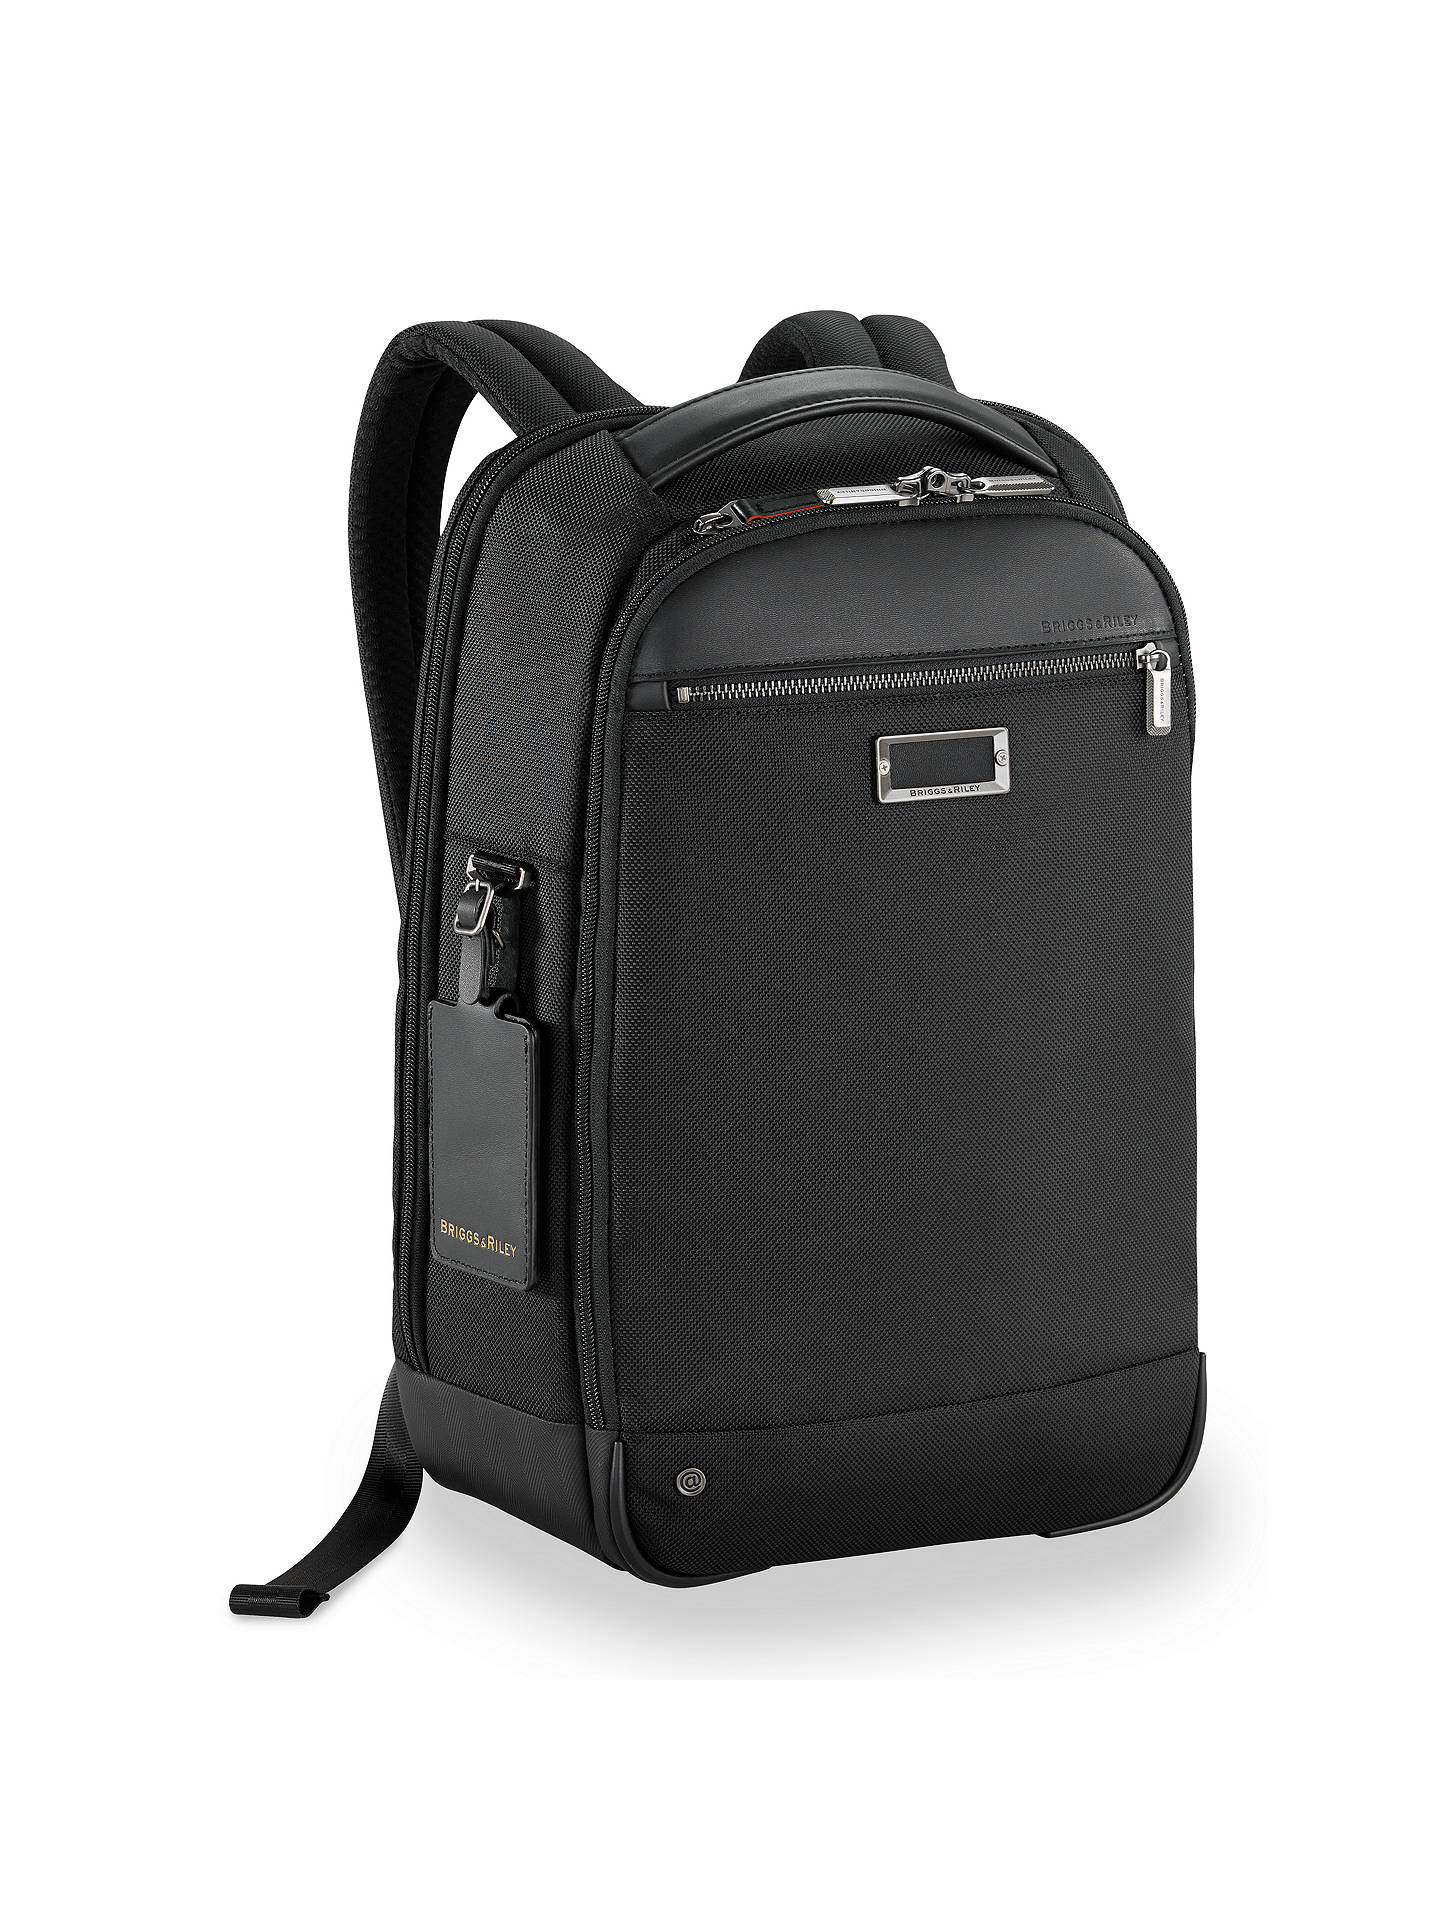 BuyBriggs & Riley AtWork Medium Slim Backpack, Black Online at johnlewis.com